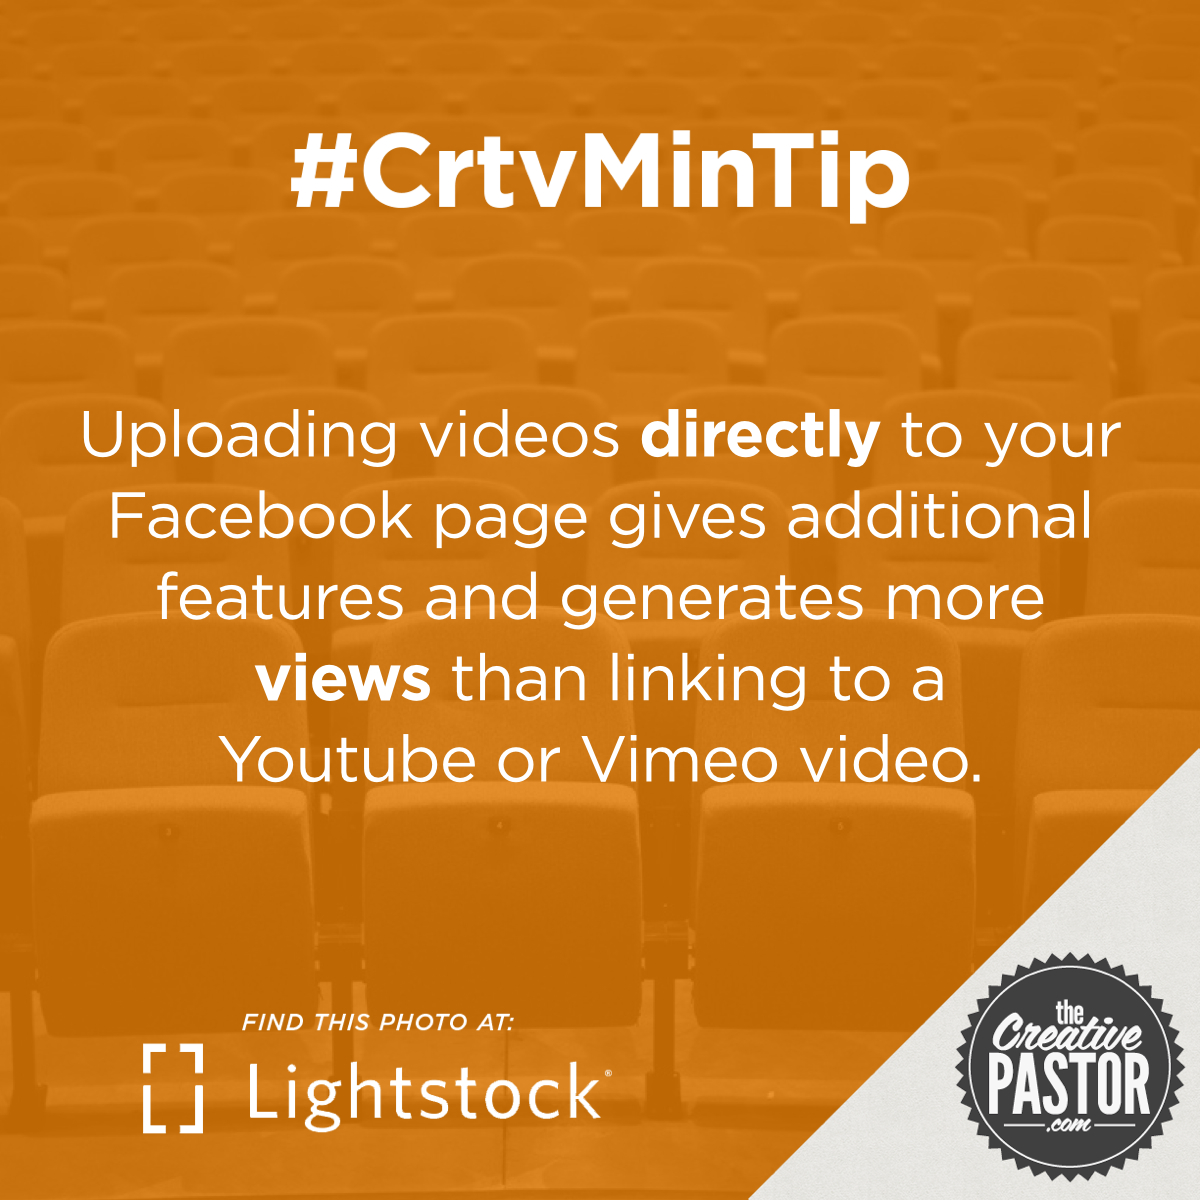 Uploading videos directly to your Facebook page gives additional features and generates more views than linking to a Youtube or Vimeo video.